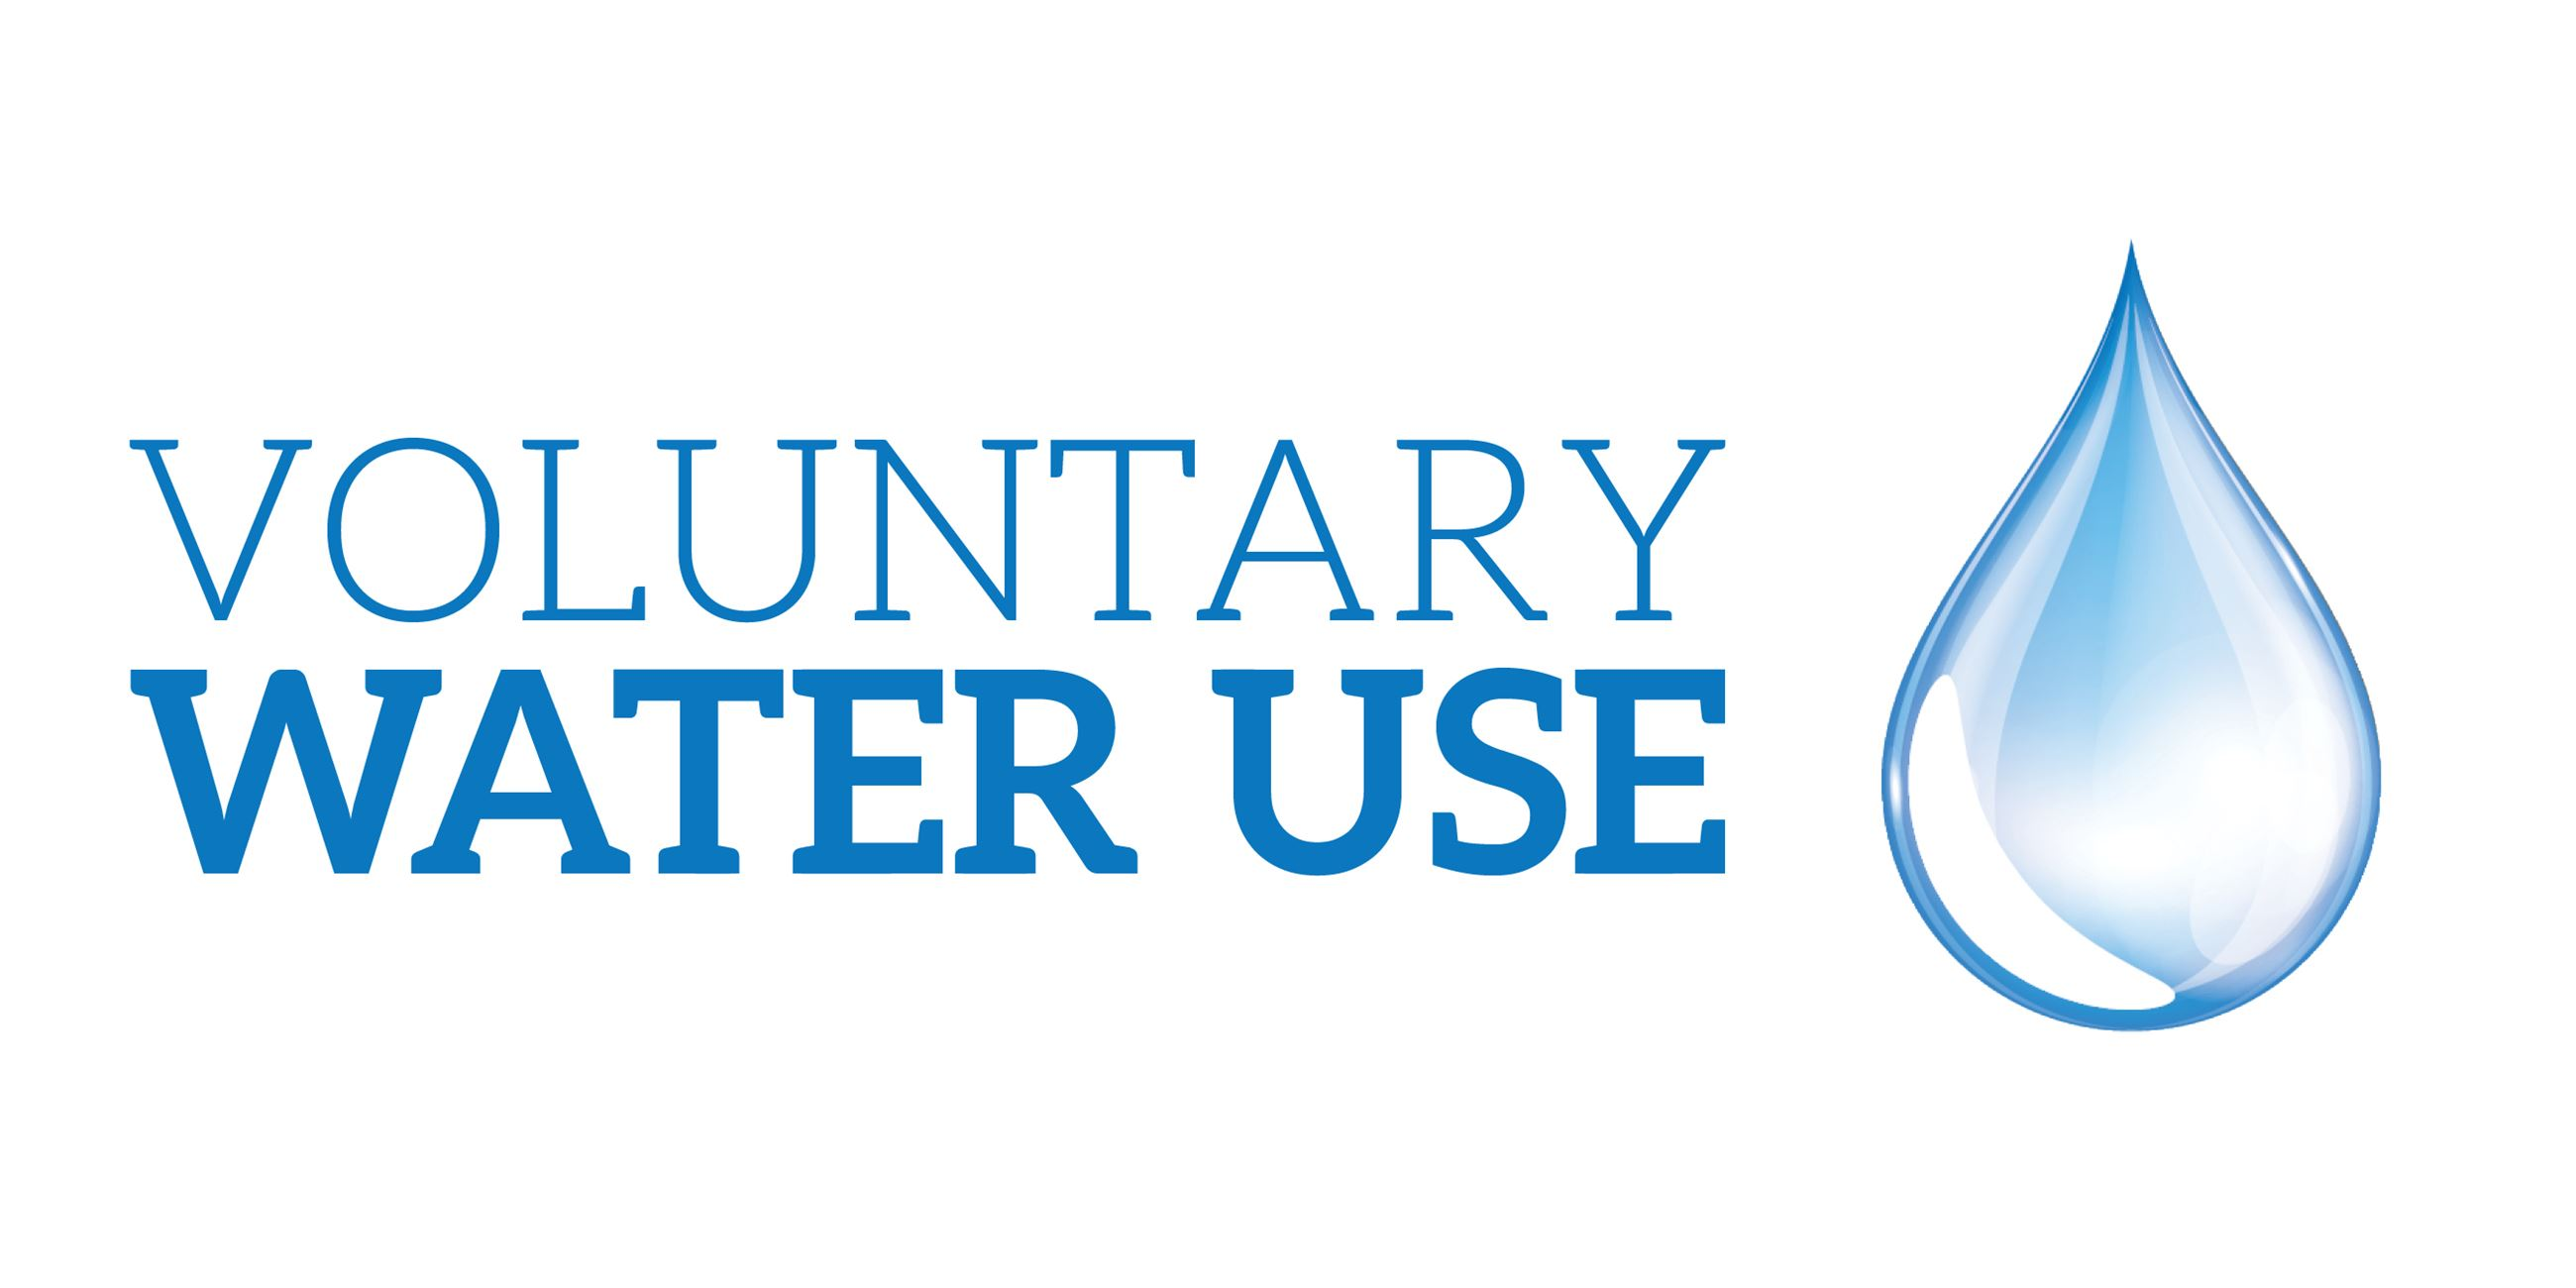 Voluntary Water Use